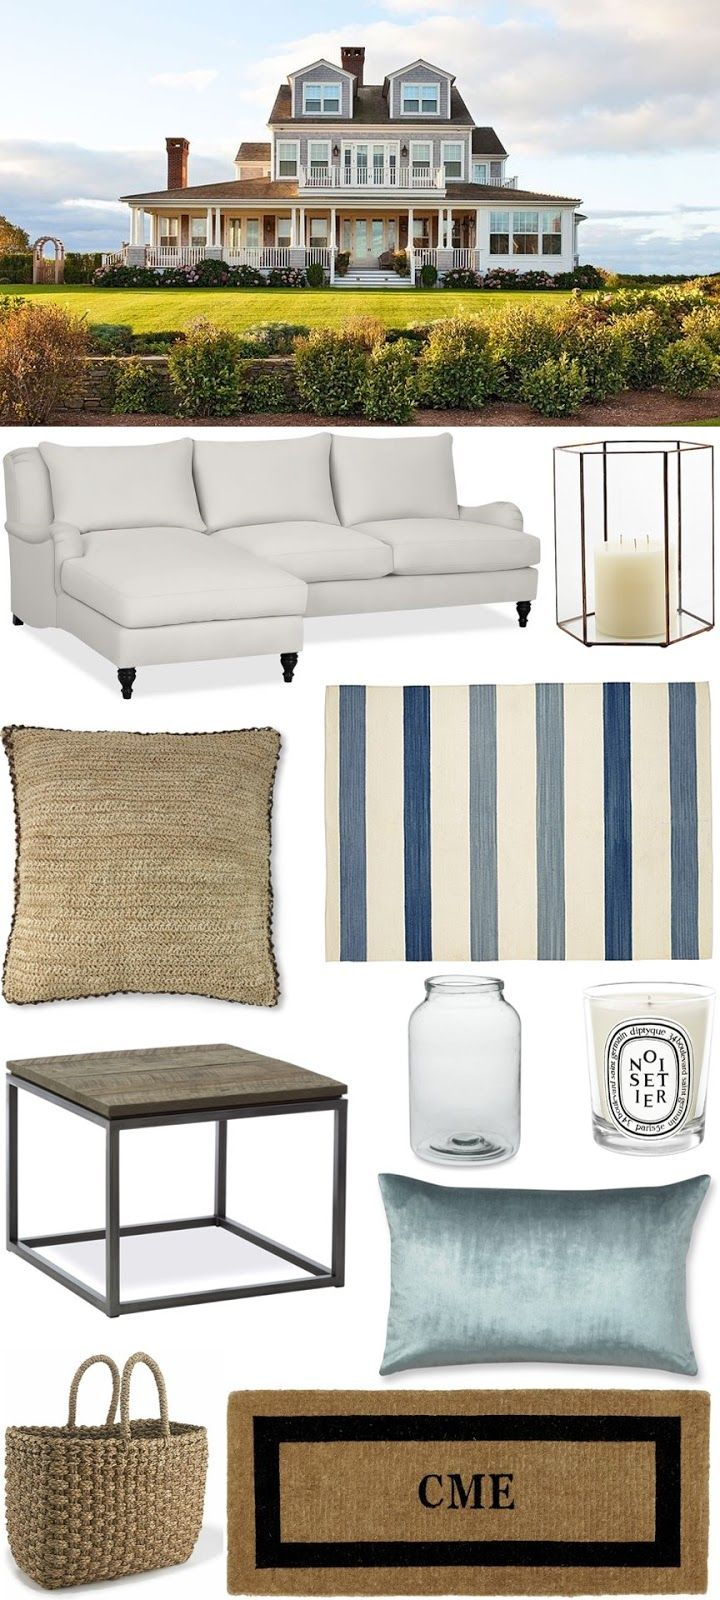 CHIC COASTAL LIVING: Nantucket Beach House: Get The Look